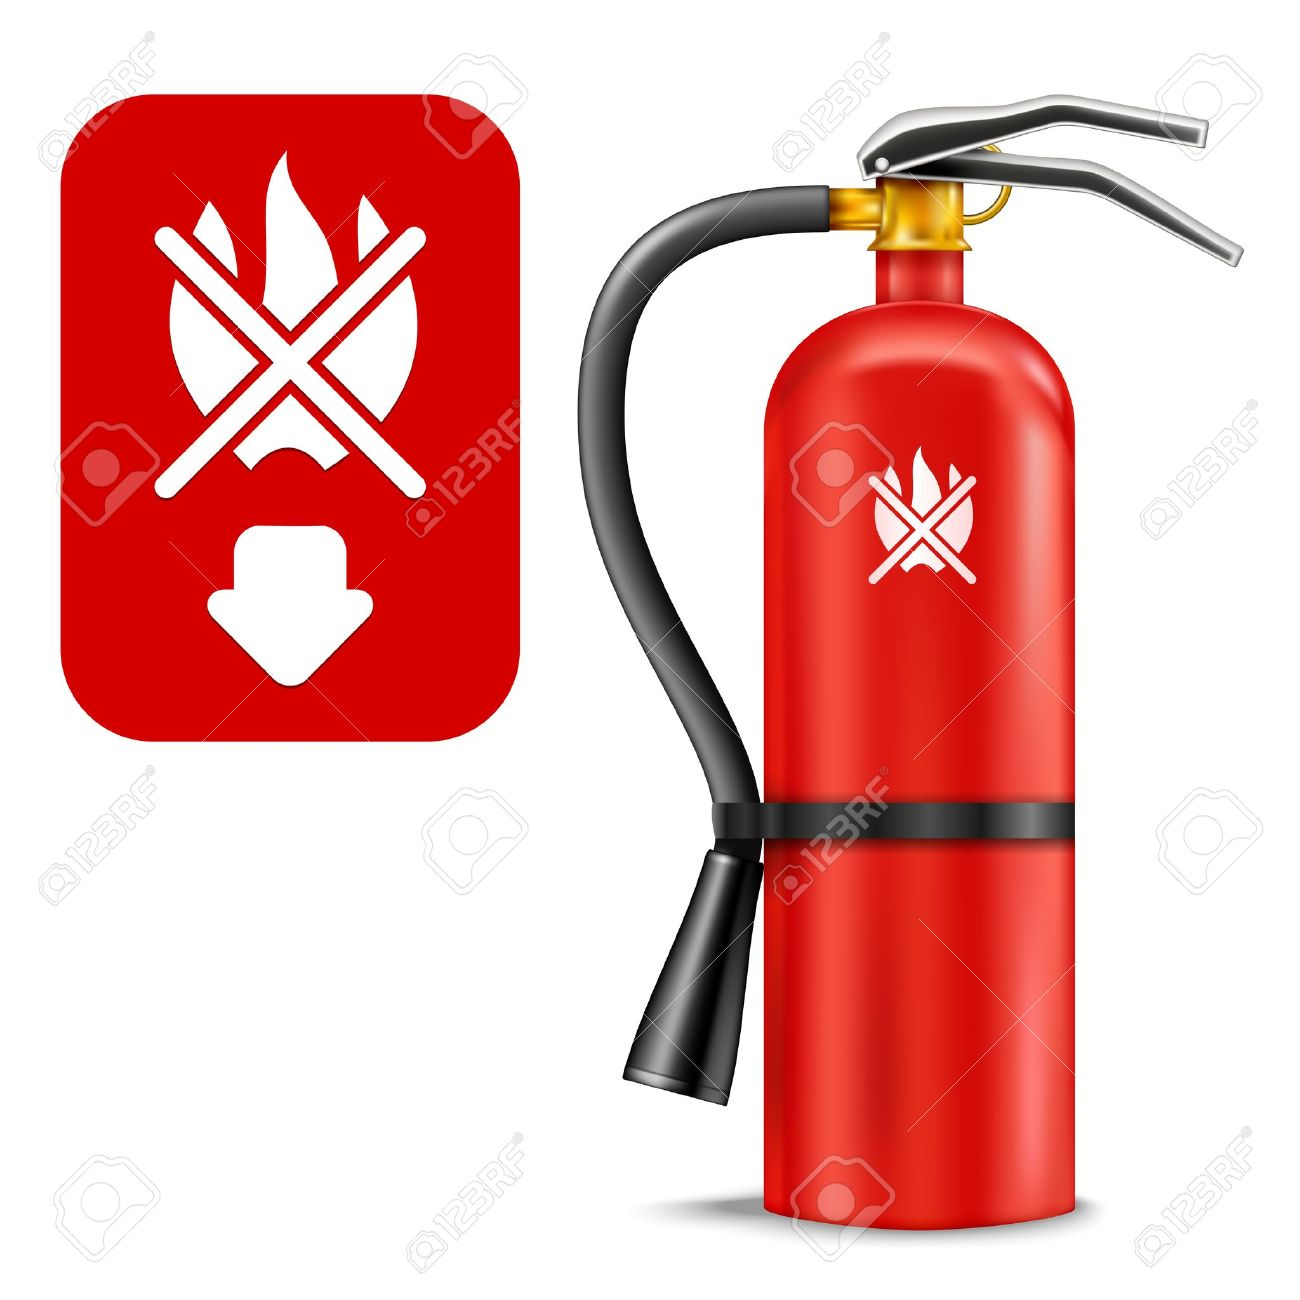 Fire Extinguisher and Sign isolated on white. Illustration Stock Vector - 15860728